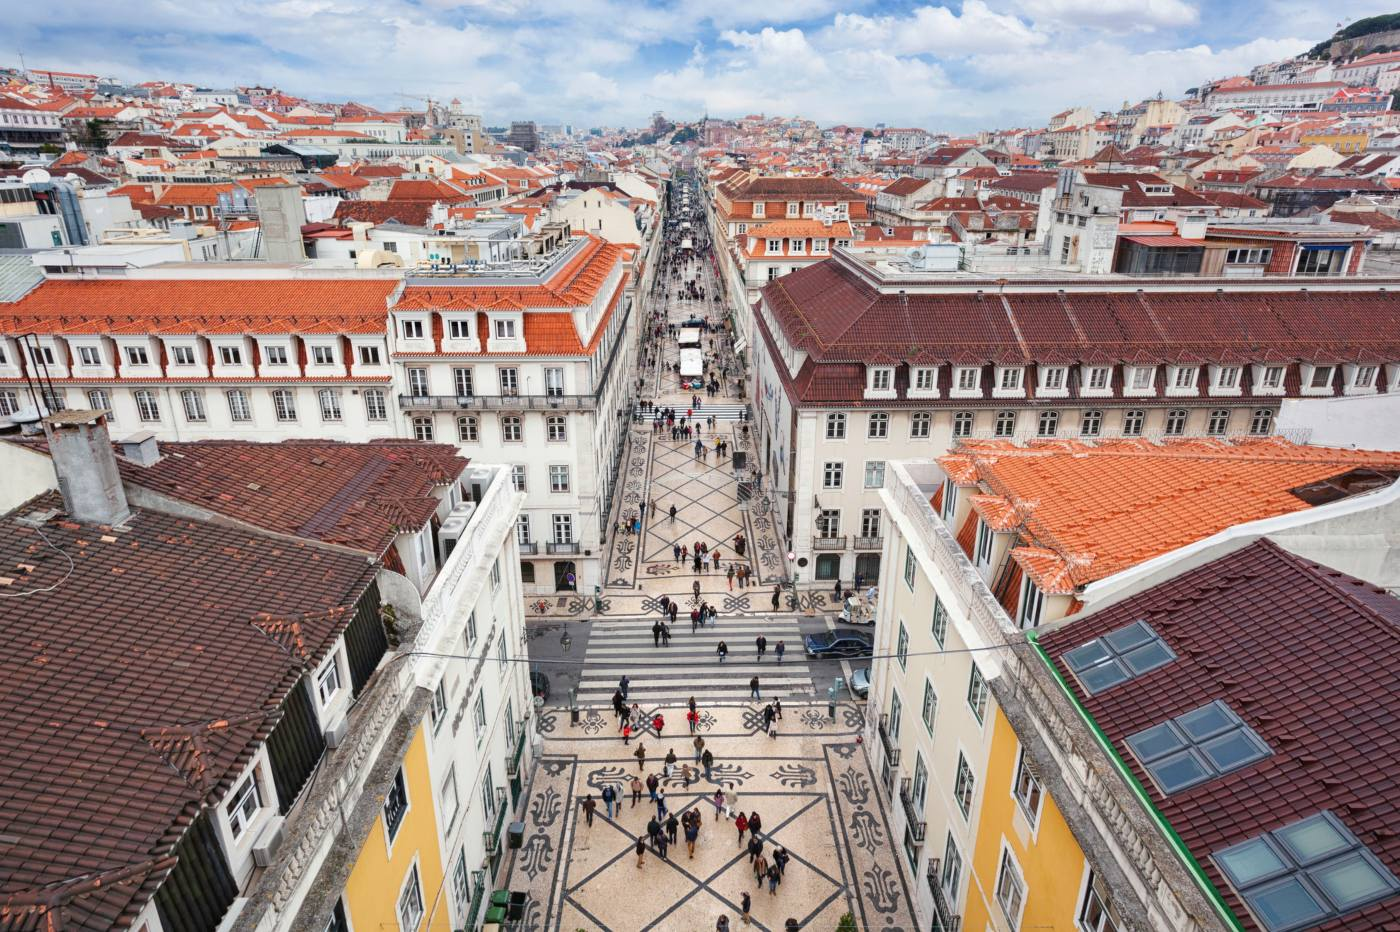 Portugal's Real Estate Market Benefits from the Growing Tech Industry